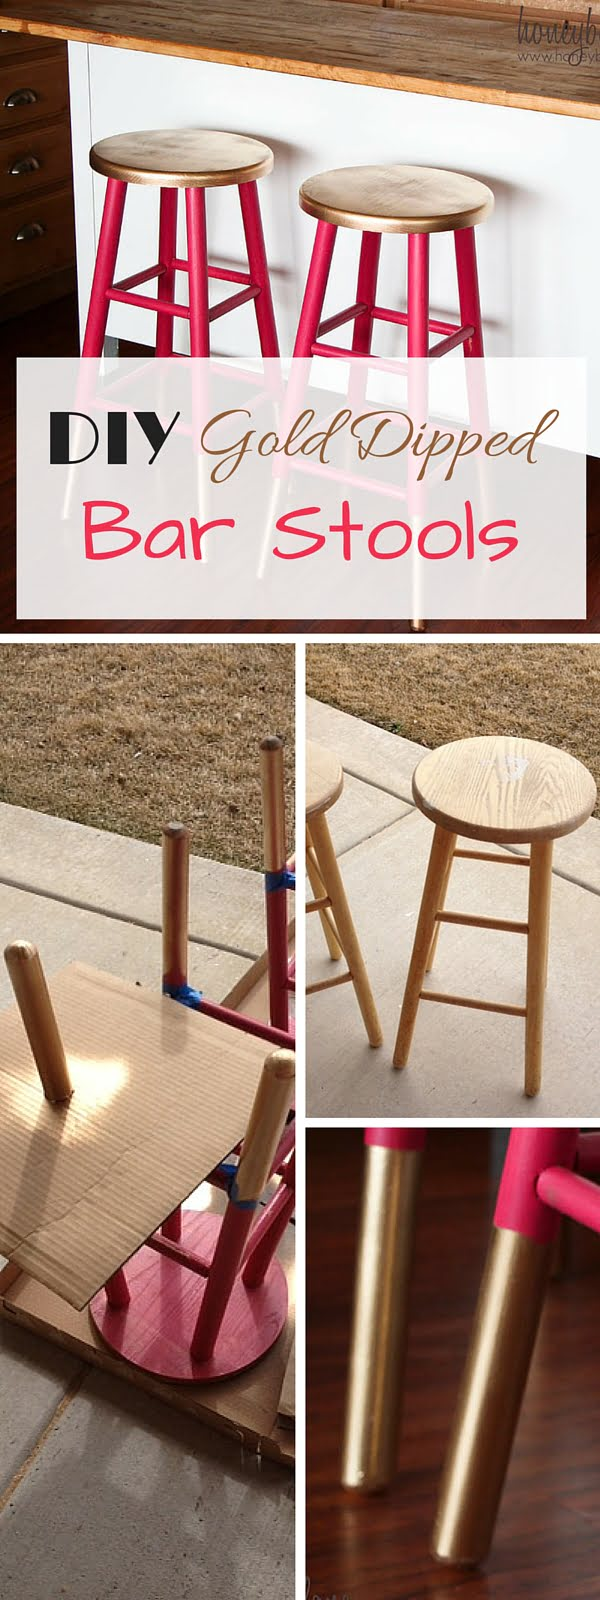 Check out the tutorial: #DIY Gold Dipped Stools #crafts #homedecor